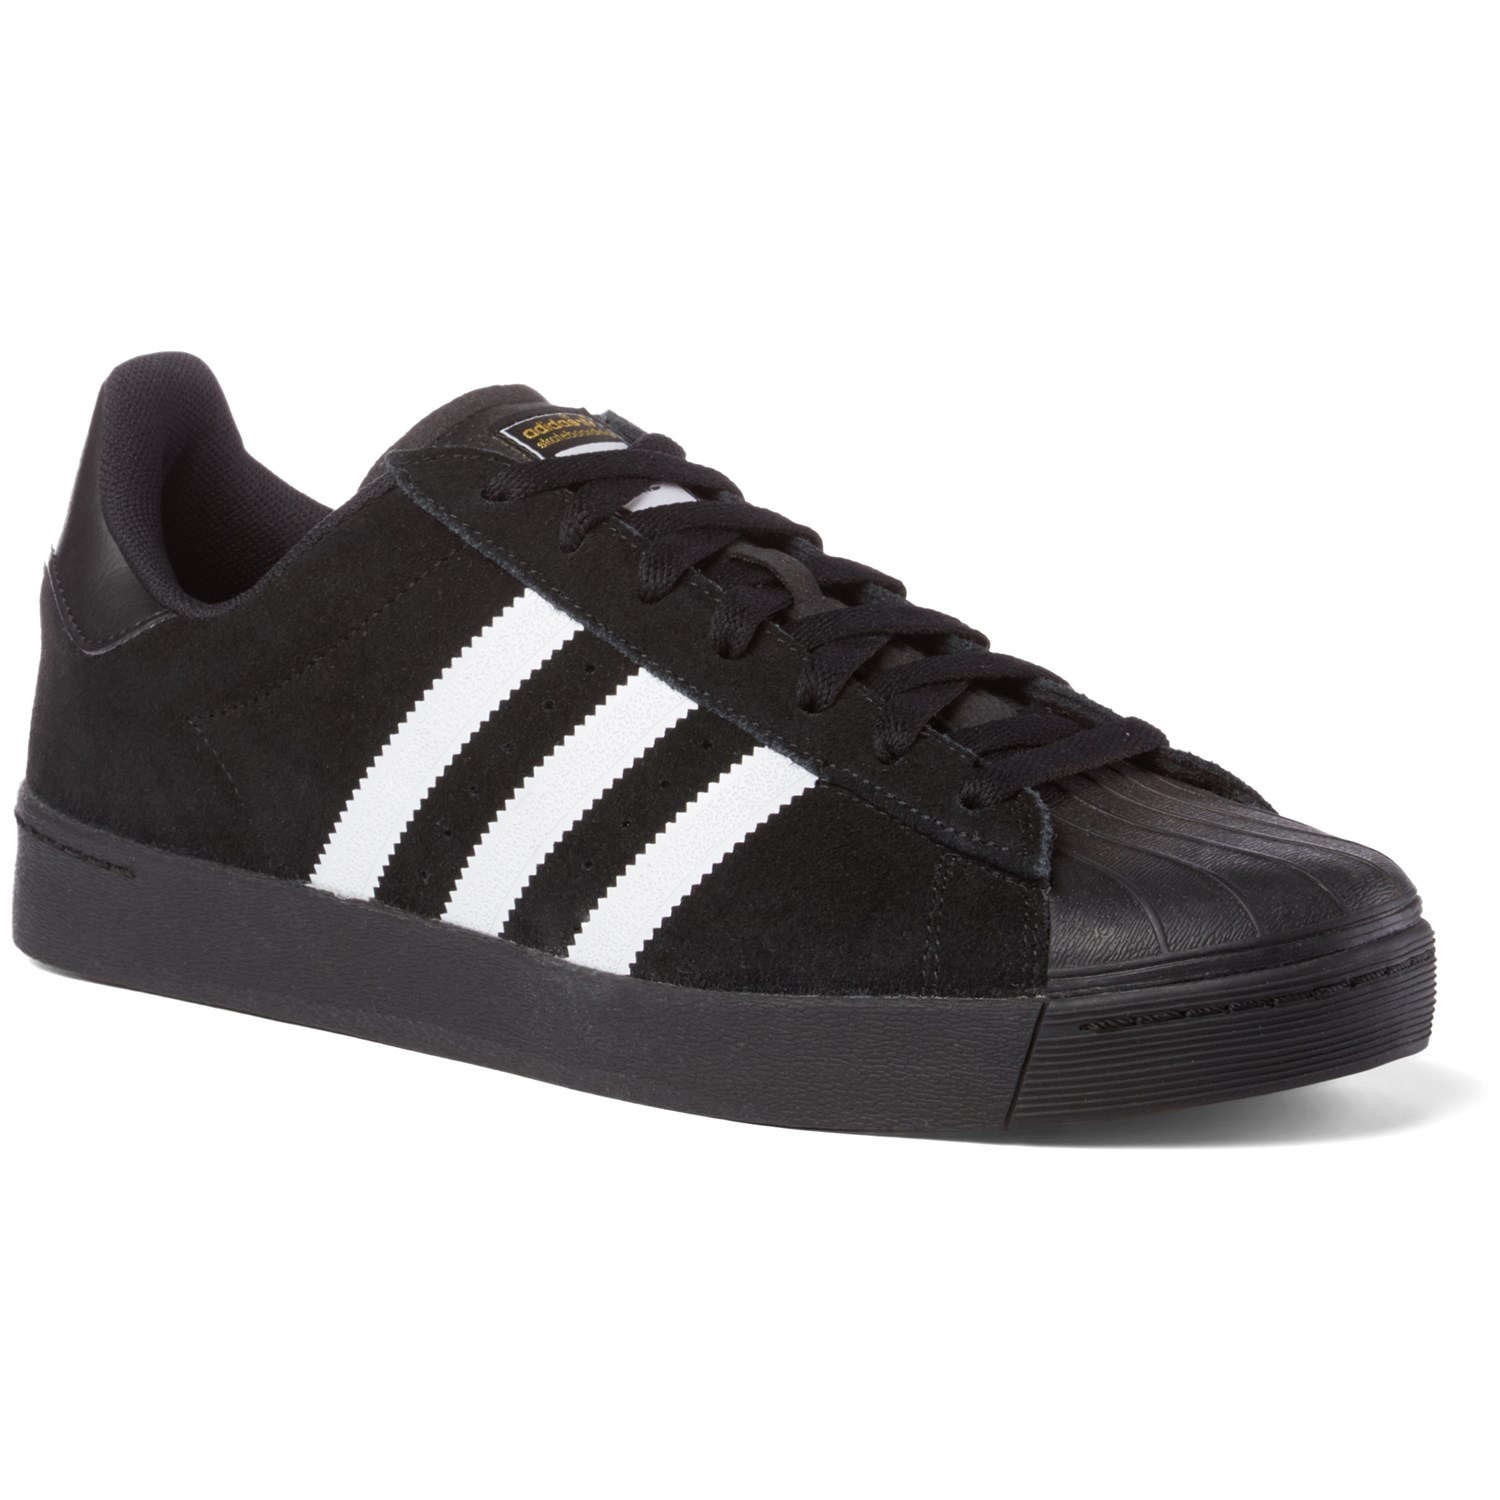 Cheap Adidas superstar adv black suede Black Friday Cam Way Estate